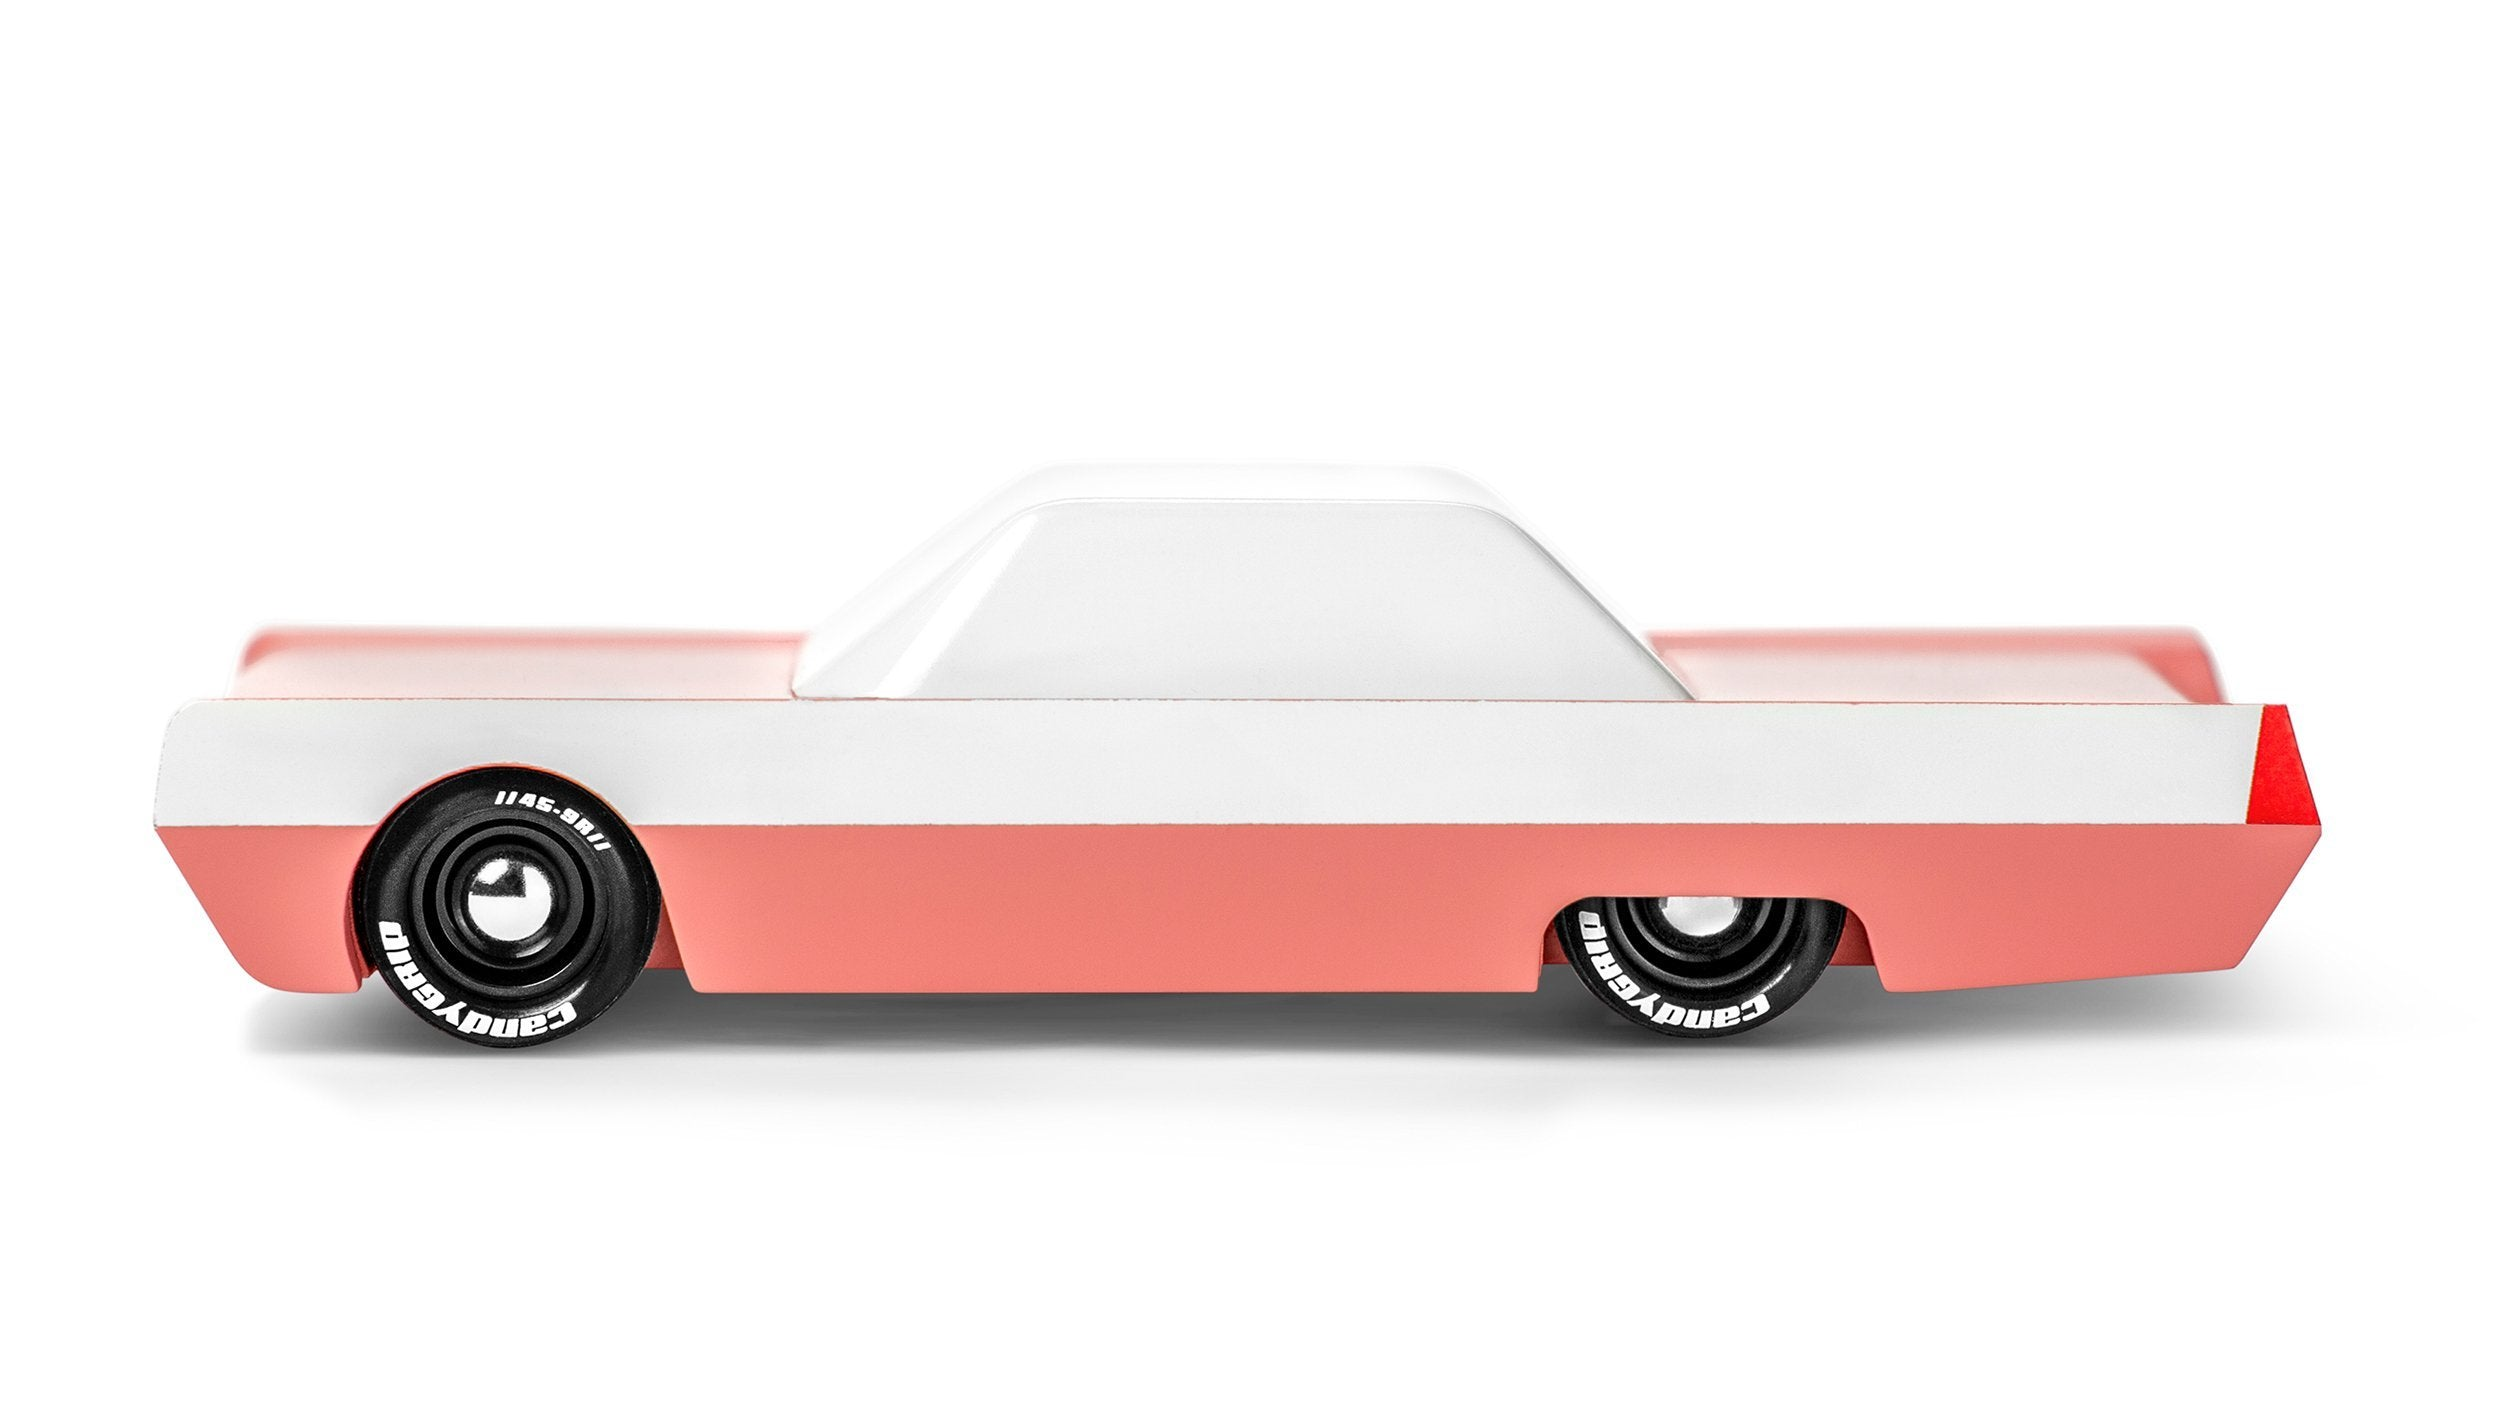 Candylab flamingo toy car. Two-tone paint fenders, white letter tires, and an attitude of barely restrained aggressivity.